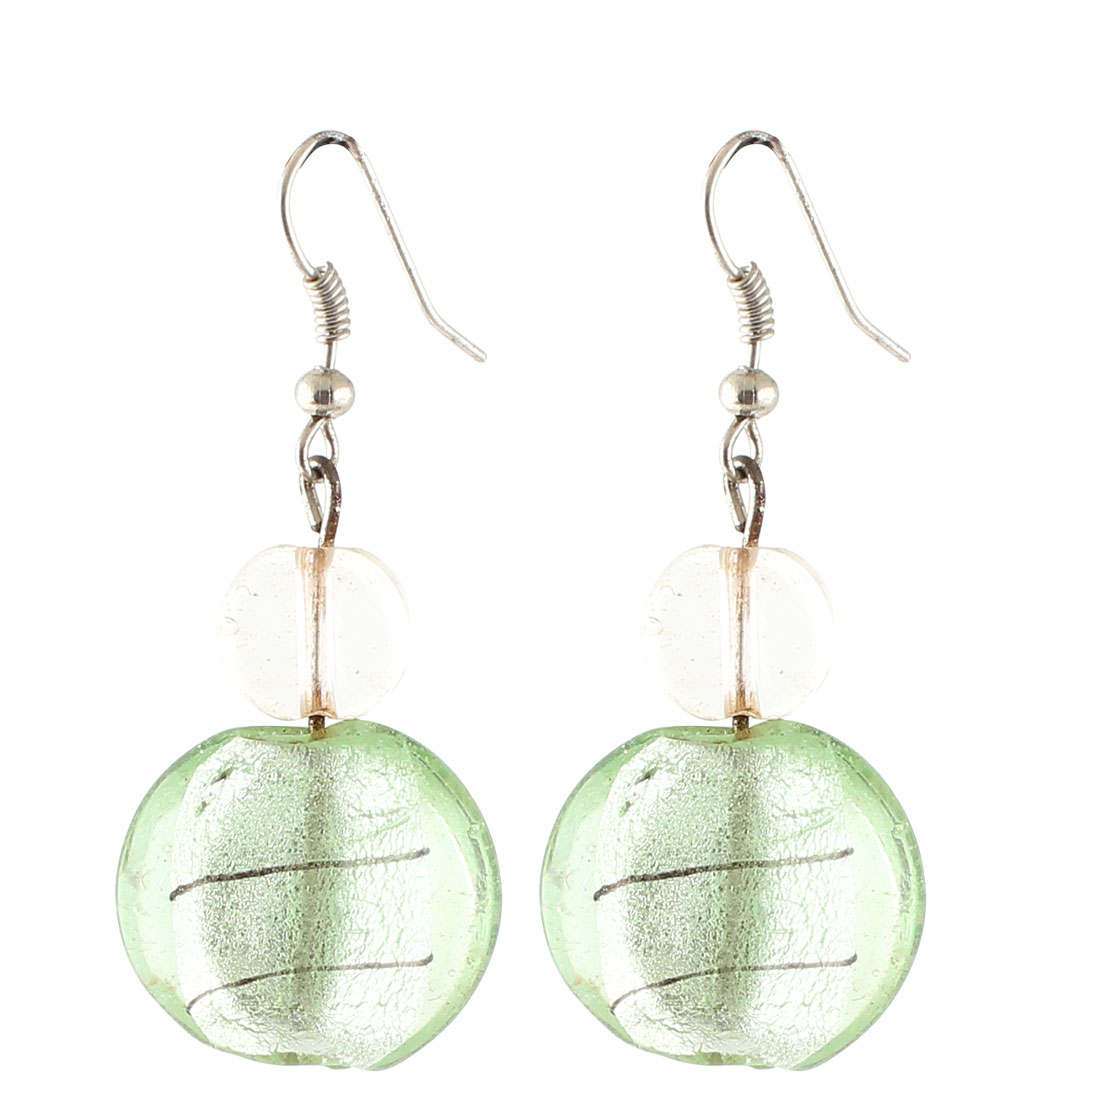 Lady Plastic Round Inner Curve Pattern Style Pendant Earrings Ornaments Green Pair